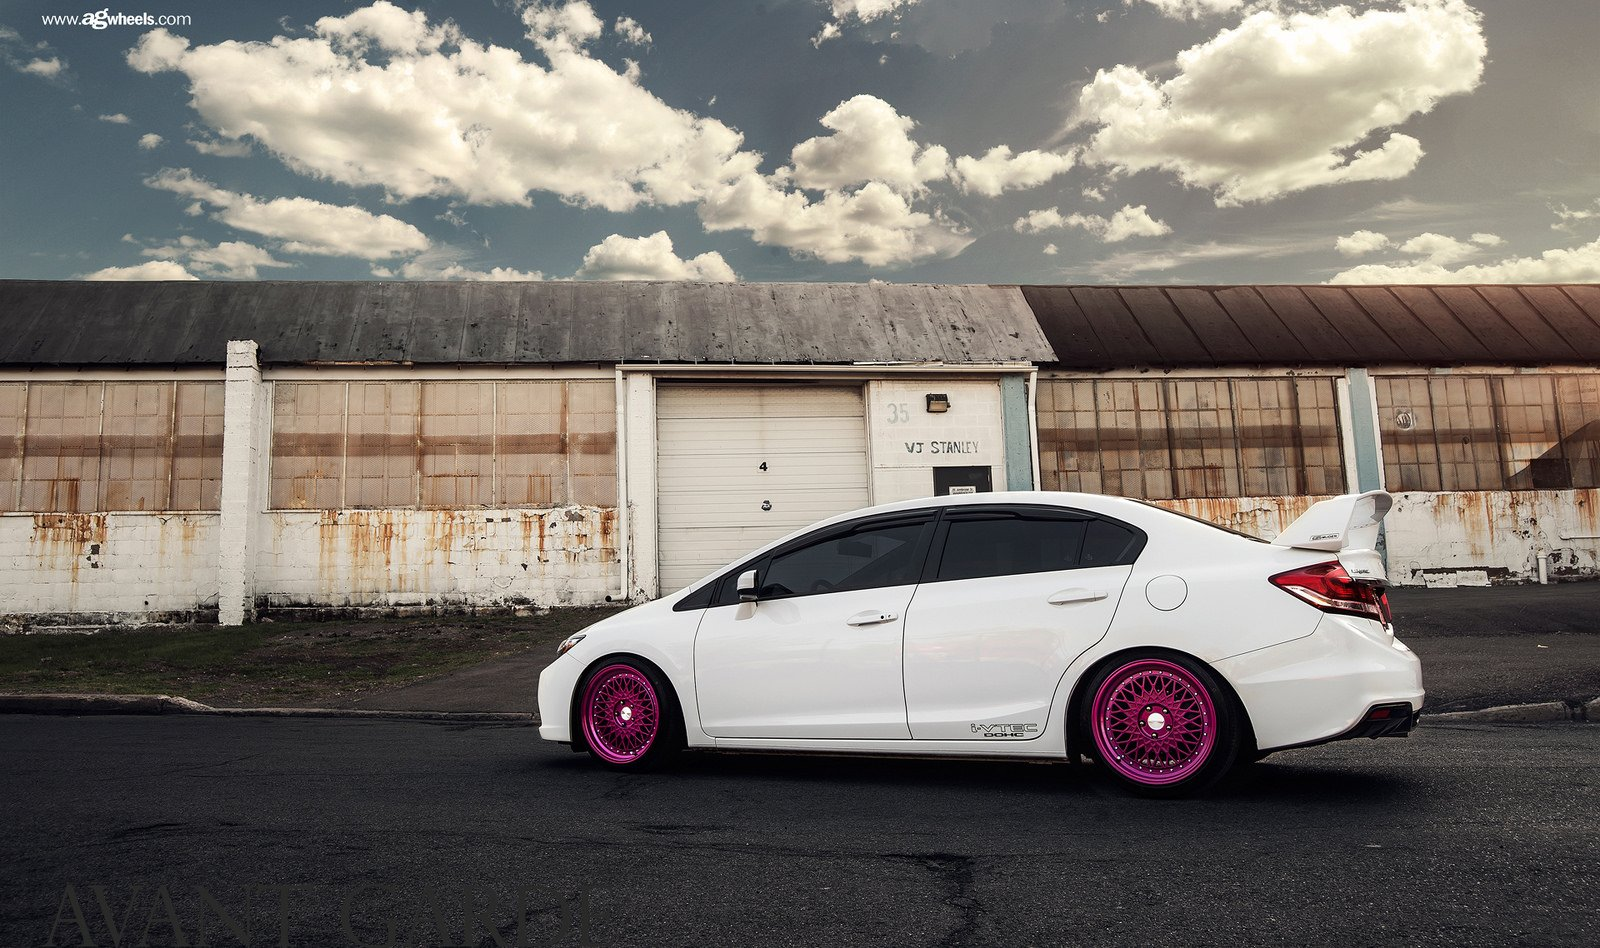 White Honda Cars 2019 2020 New Car Release Date 2002 Tahoe Power Seat Wiring Diagram Civic Si Modified Wallpaper 1600x948